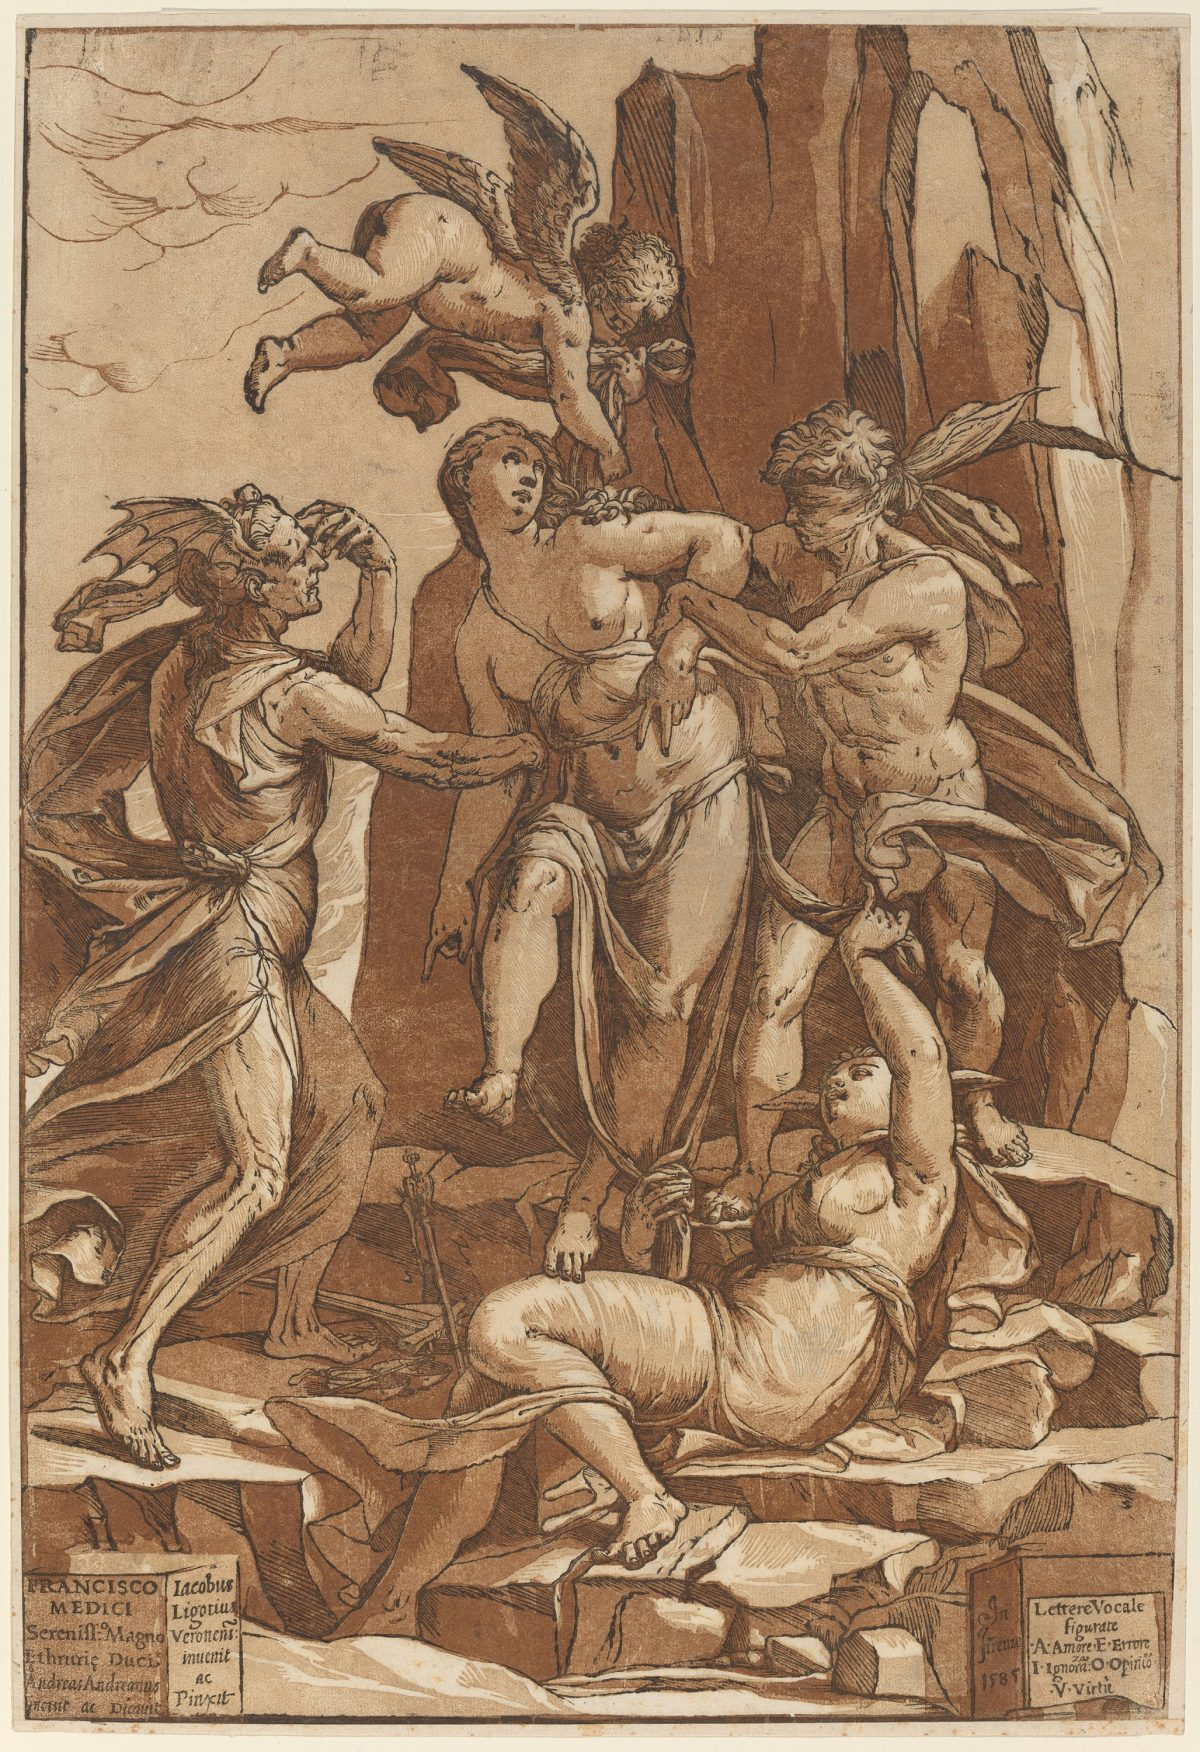 Virute, woman being pulled in all directions, tempted by angels and creatures. Chiaroscuro print in brown.